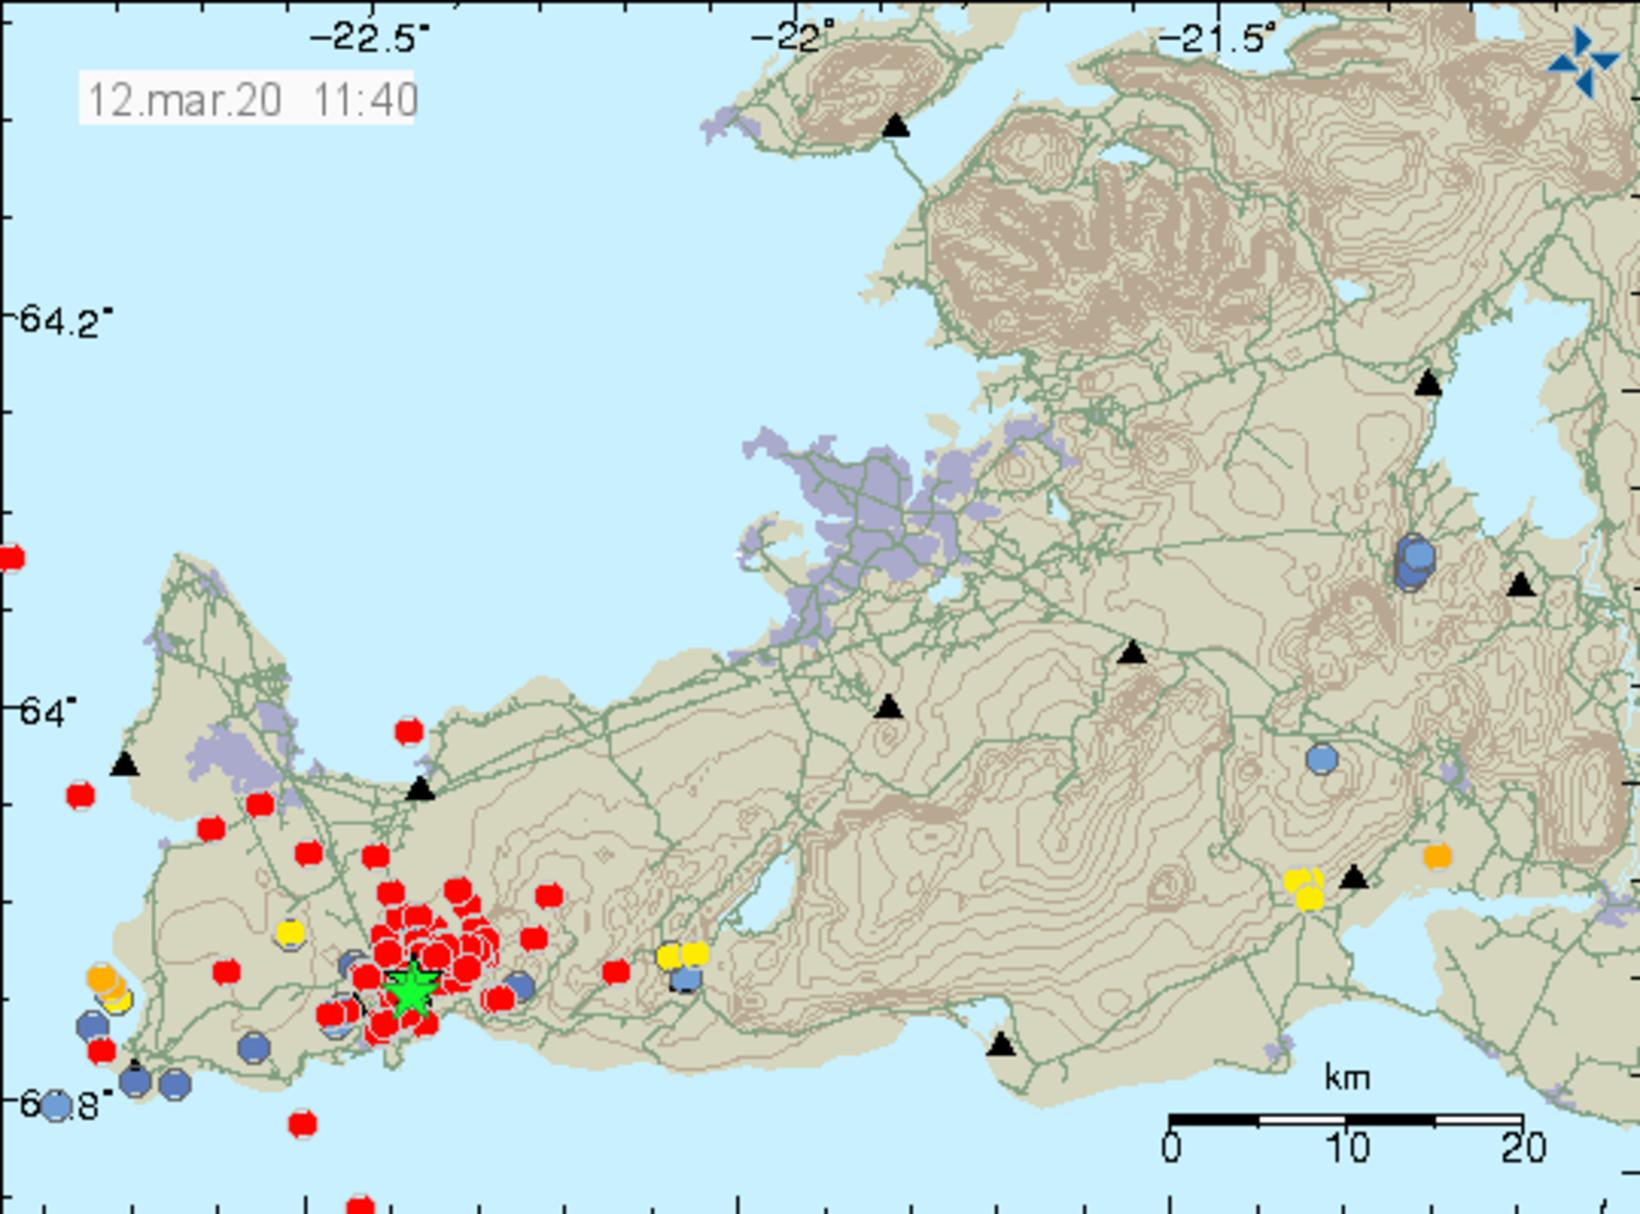 The location of the earthquakes.